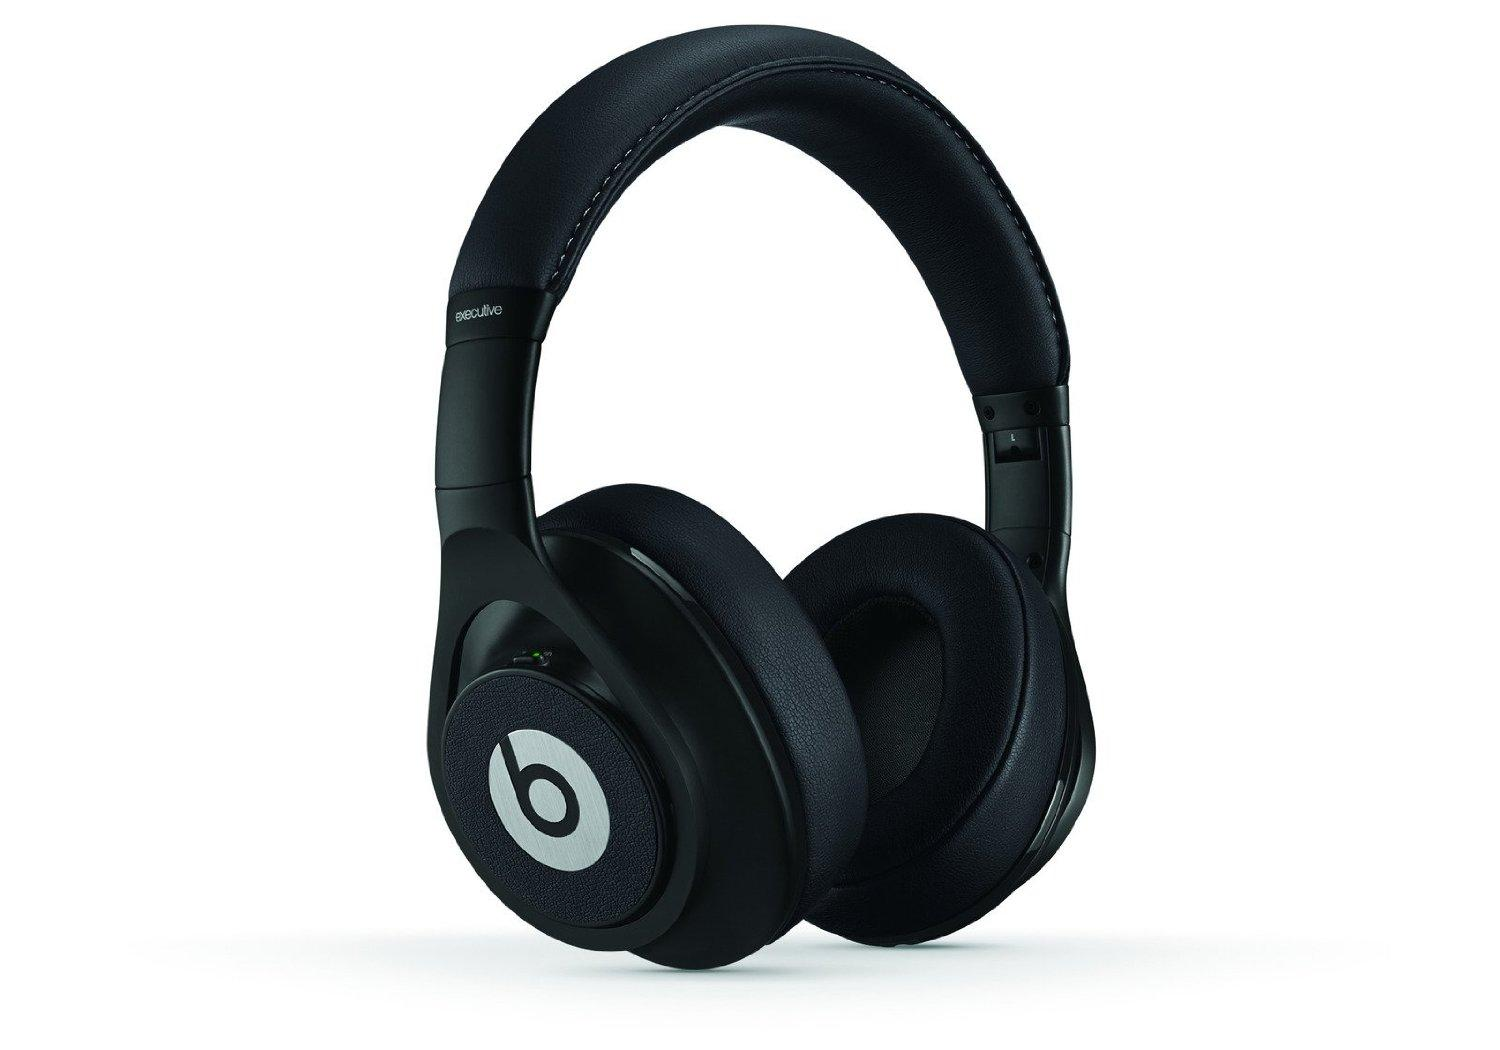 $149.99 Beats By Dr. Dre Executive Noise Cancelling Headphones, Black